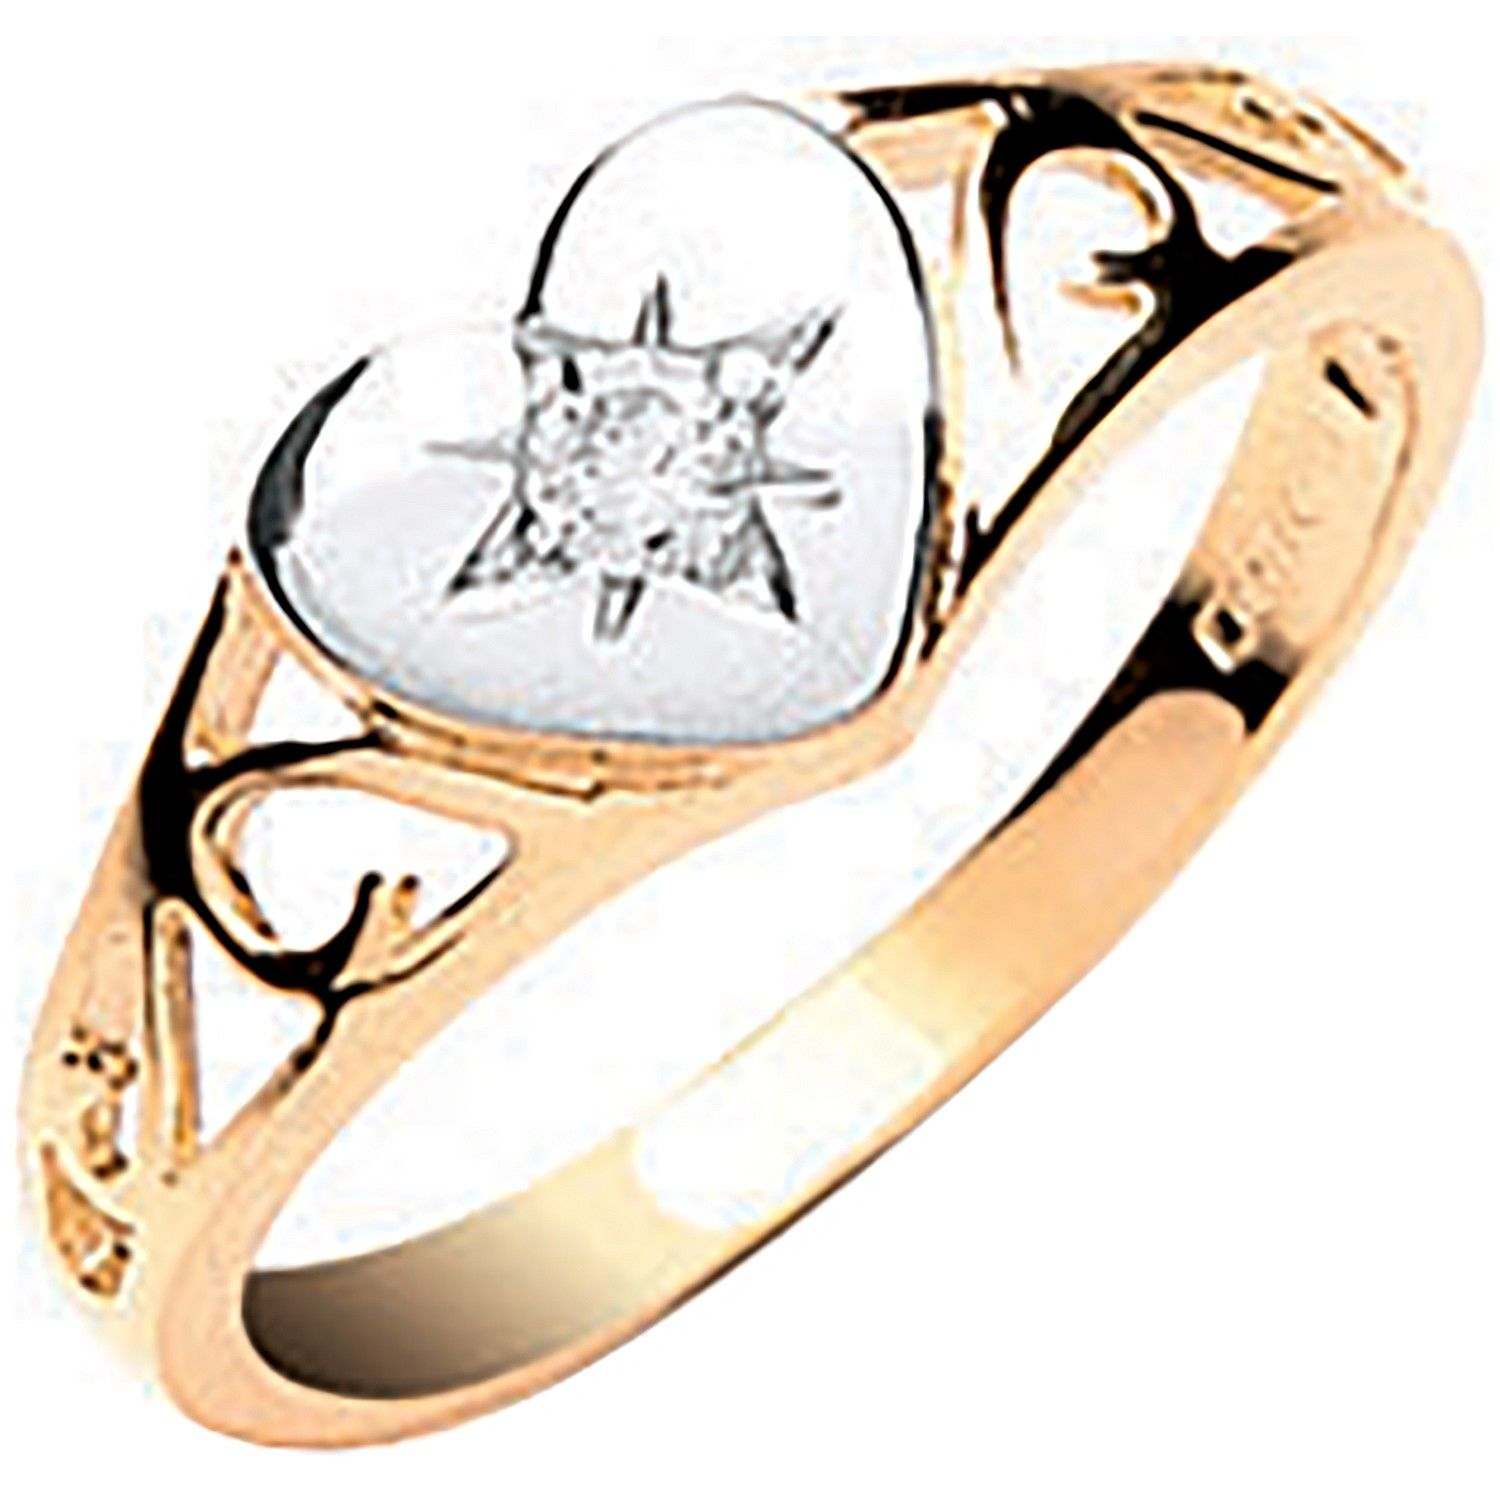 9ct Yellow Gold Baby CZ Heart Signet Ring Cubic Zirconia Gold